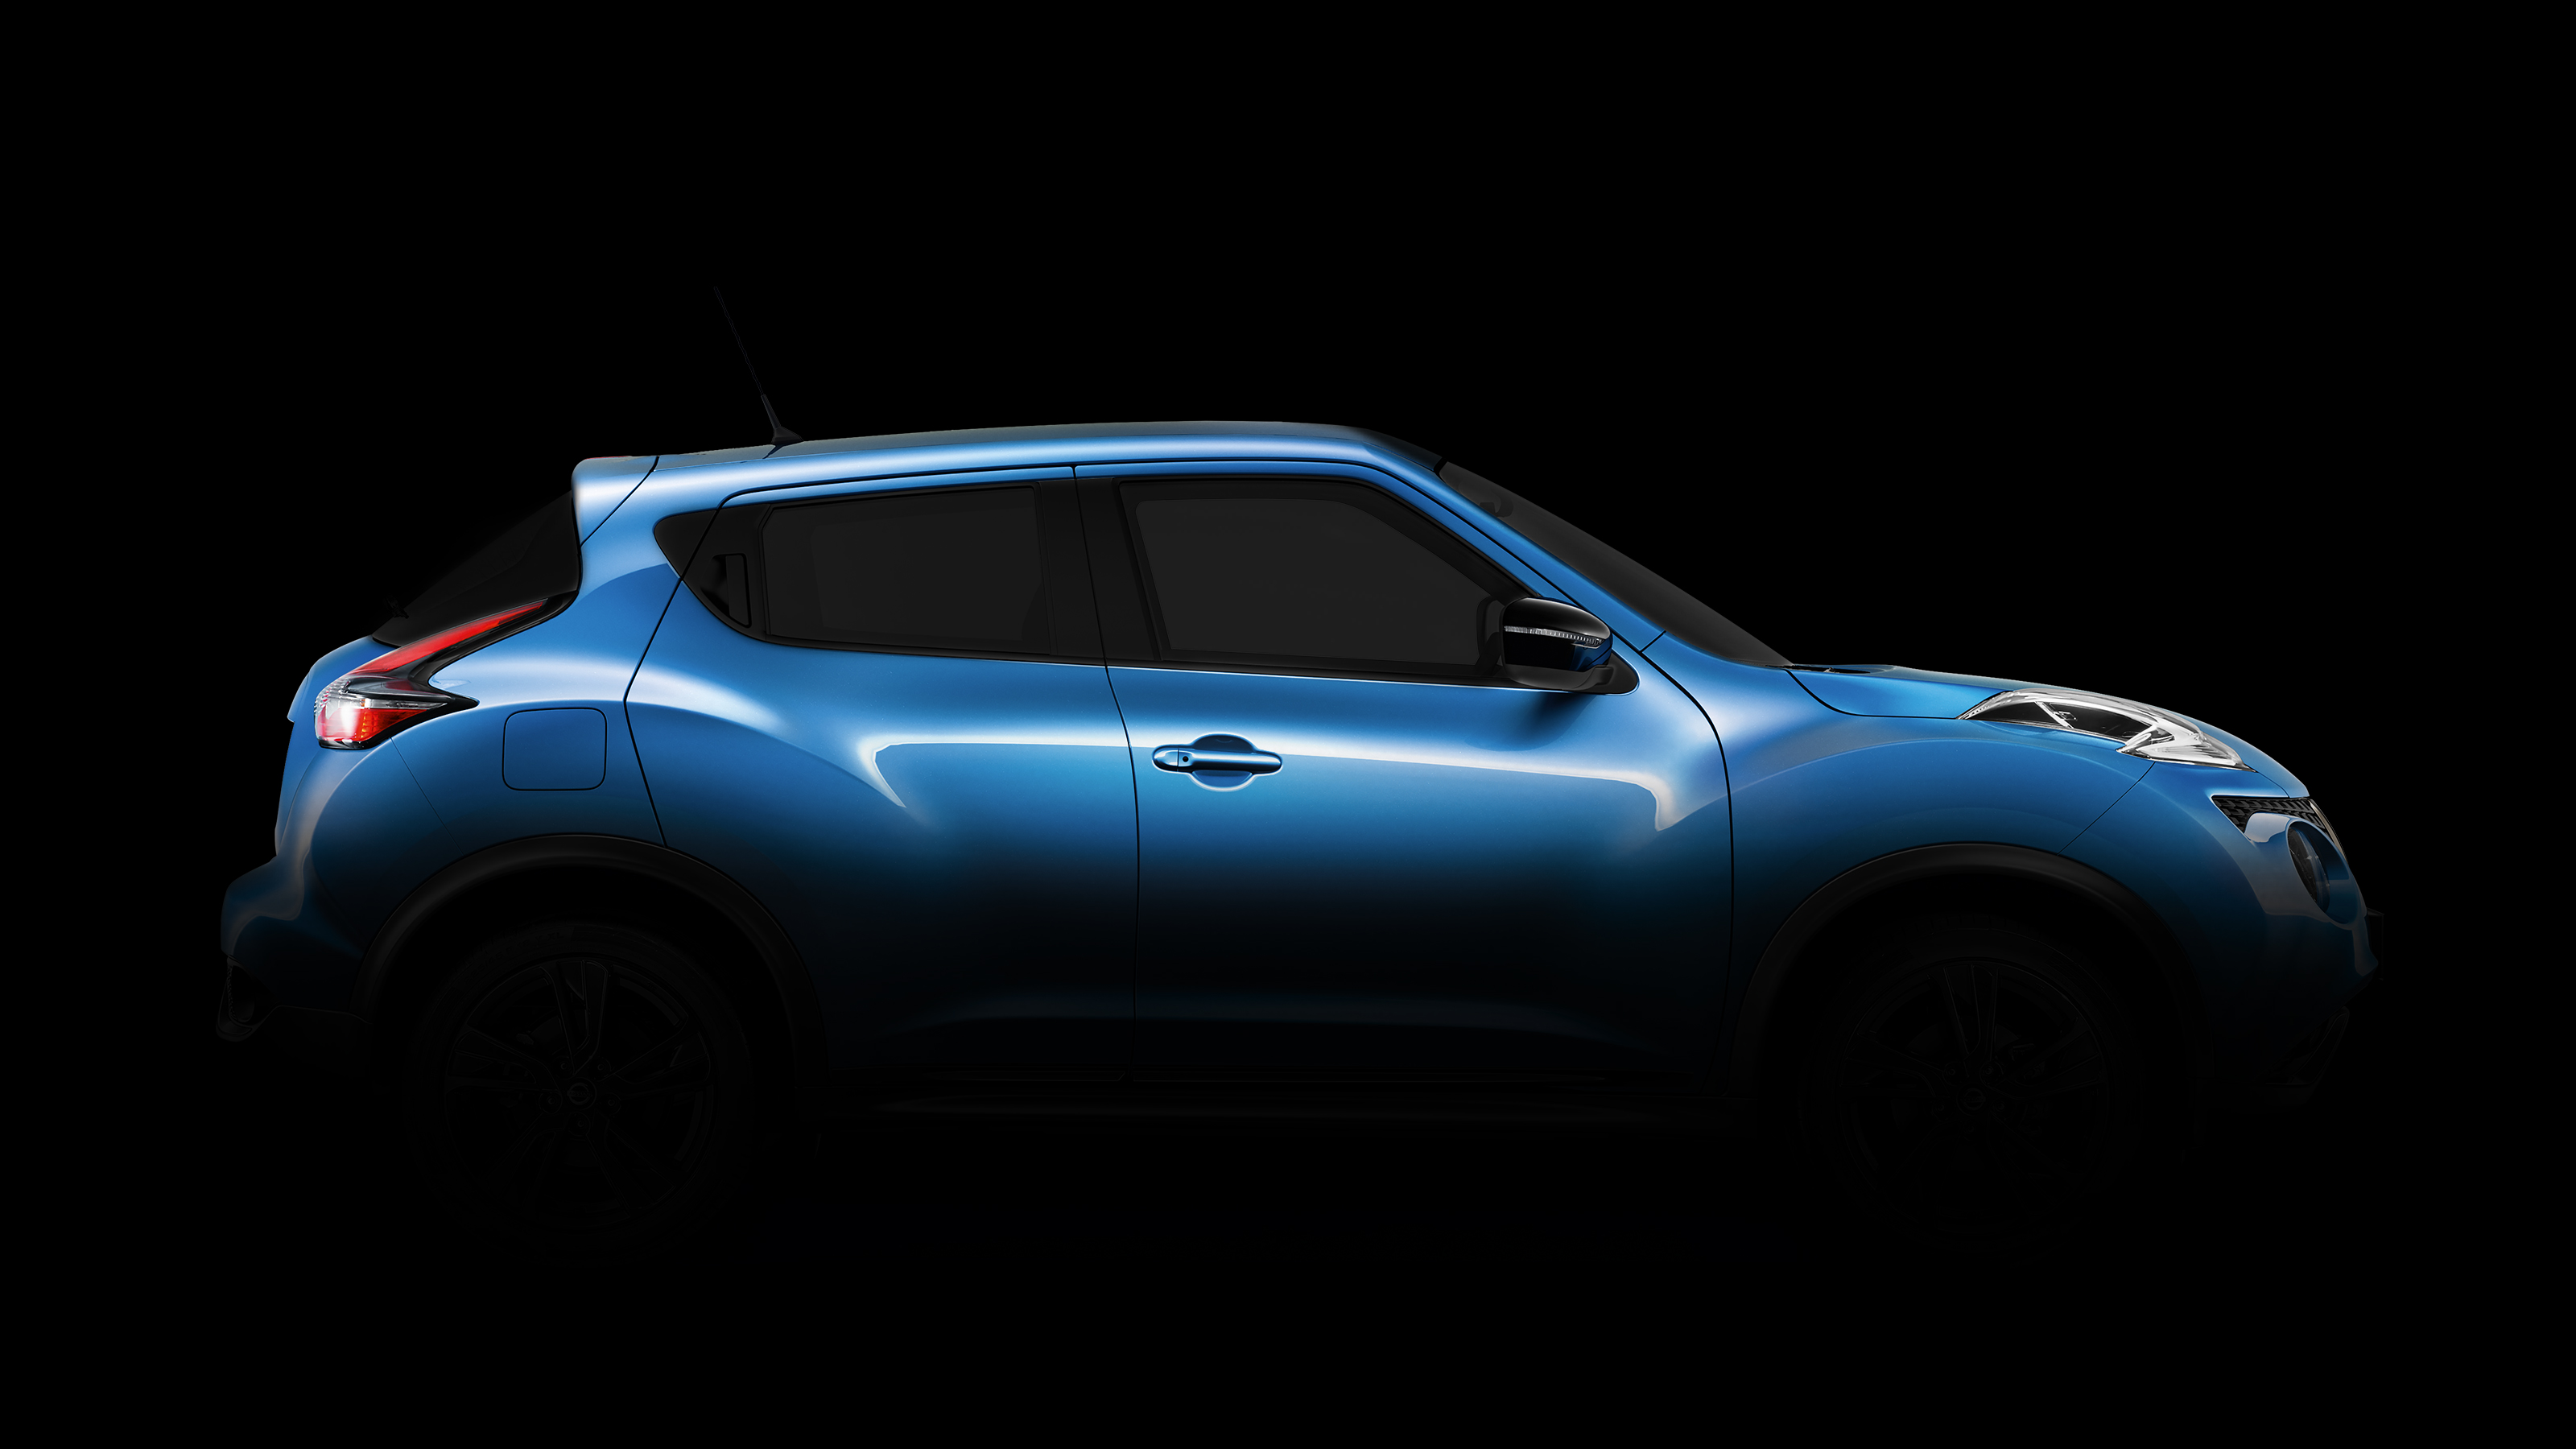 2018 Nissan JUKE profile blue in the dark